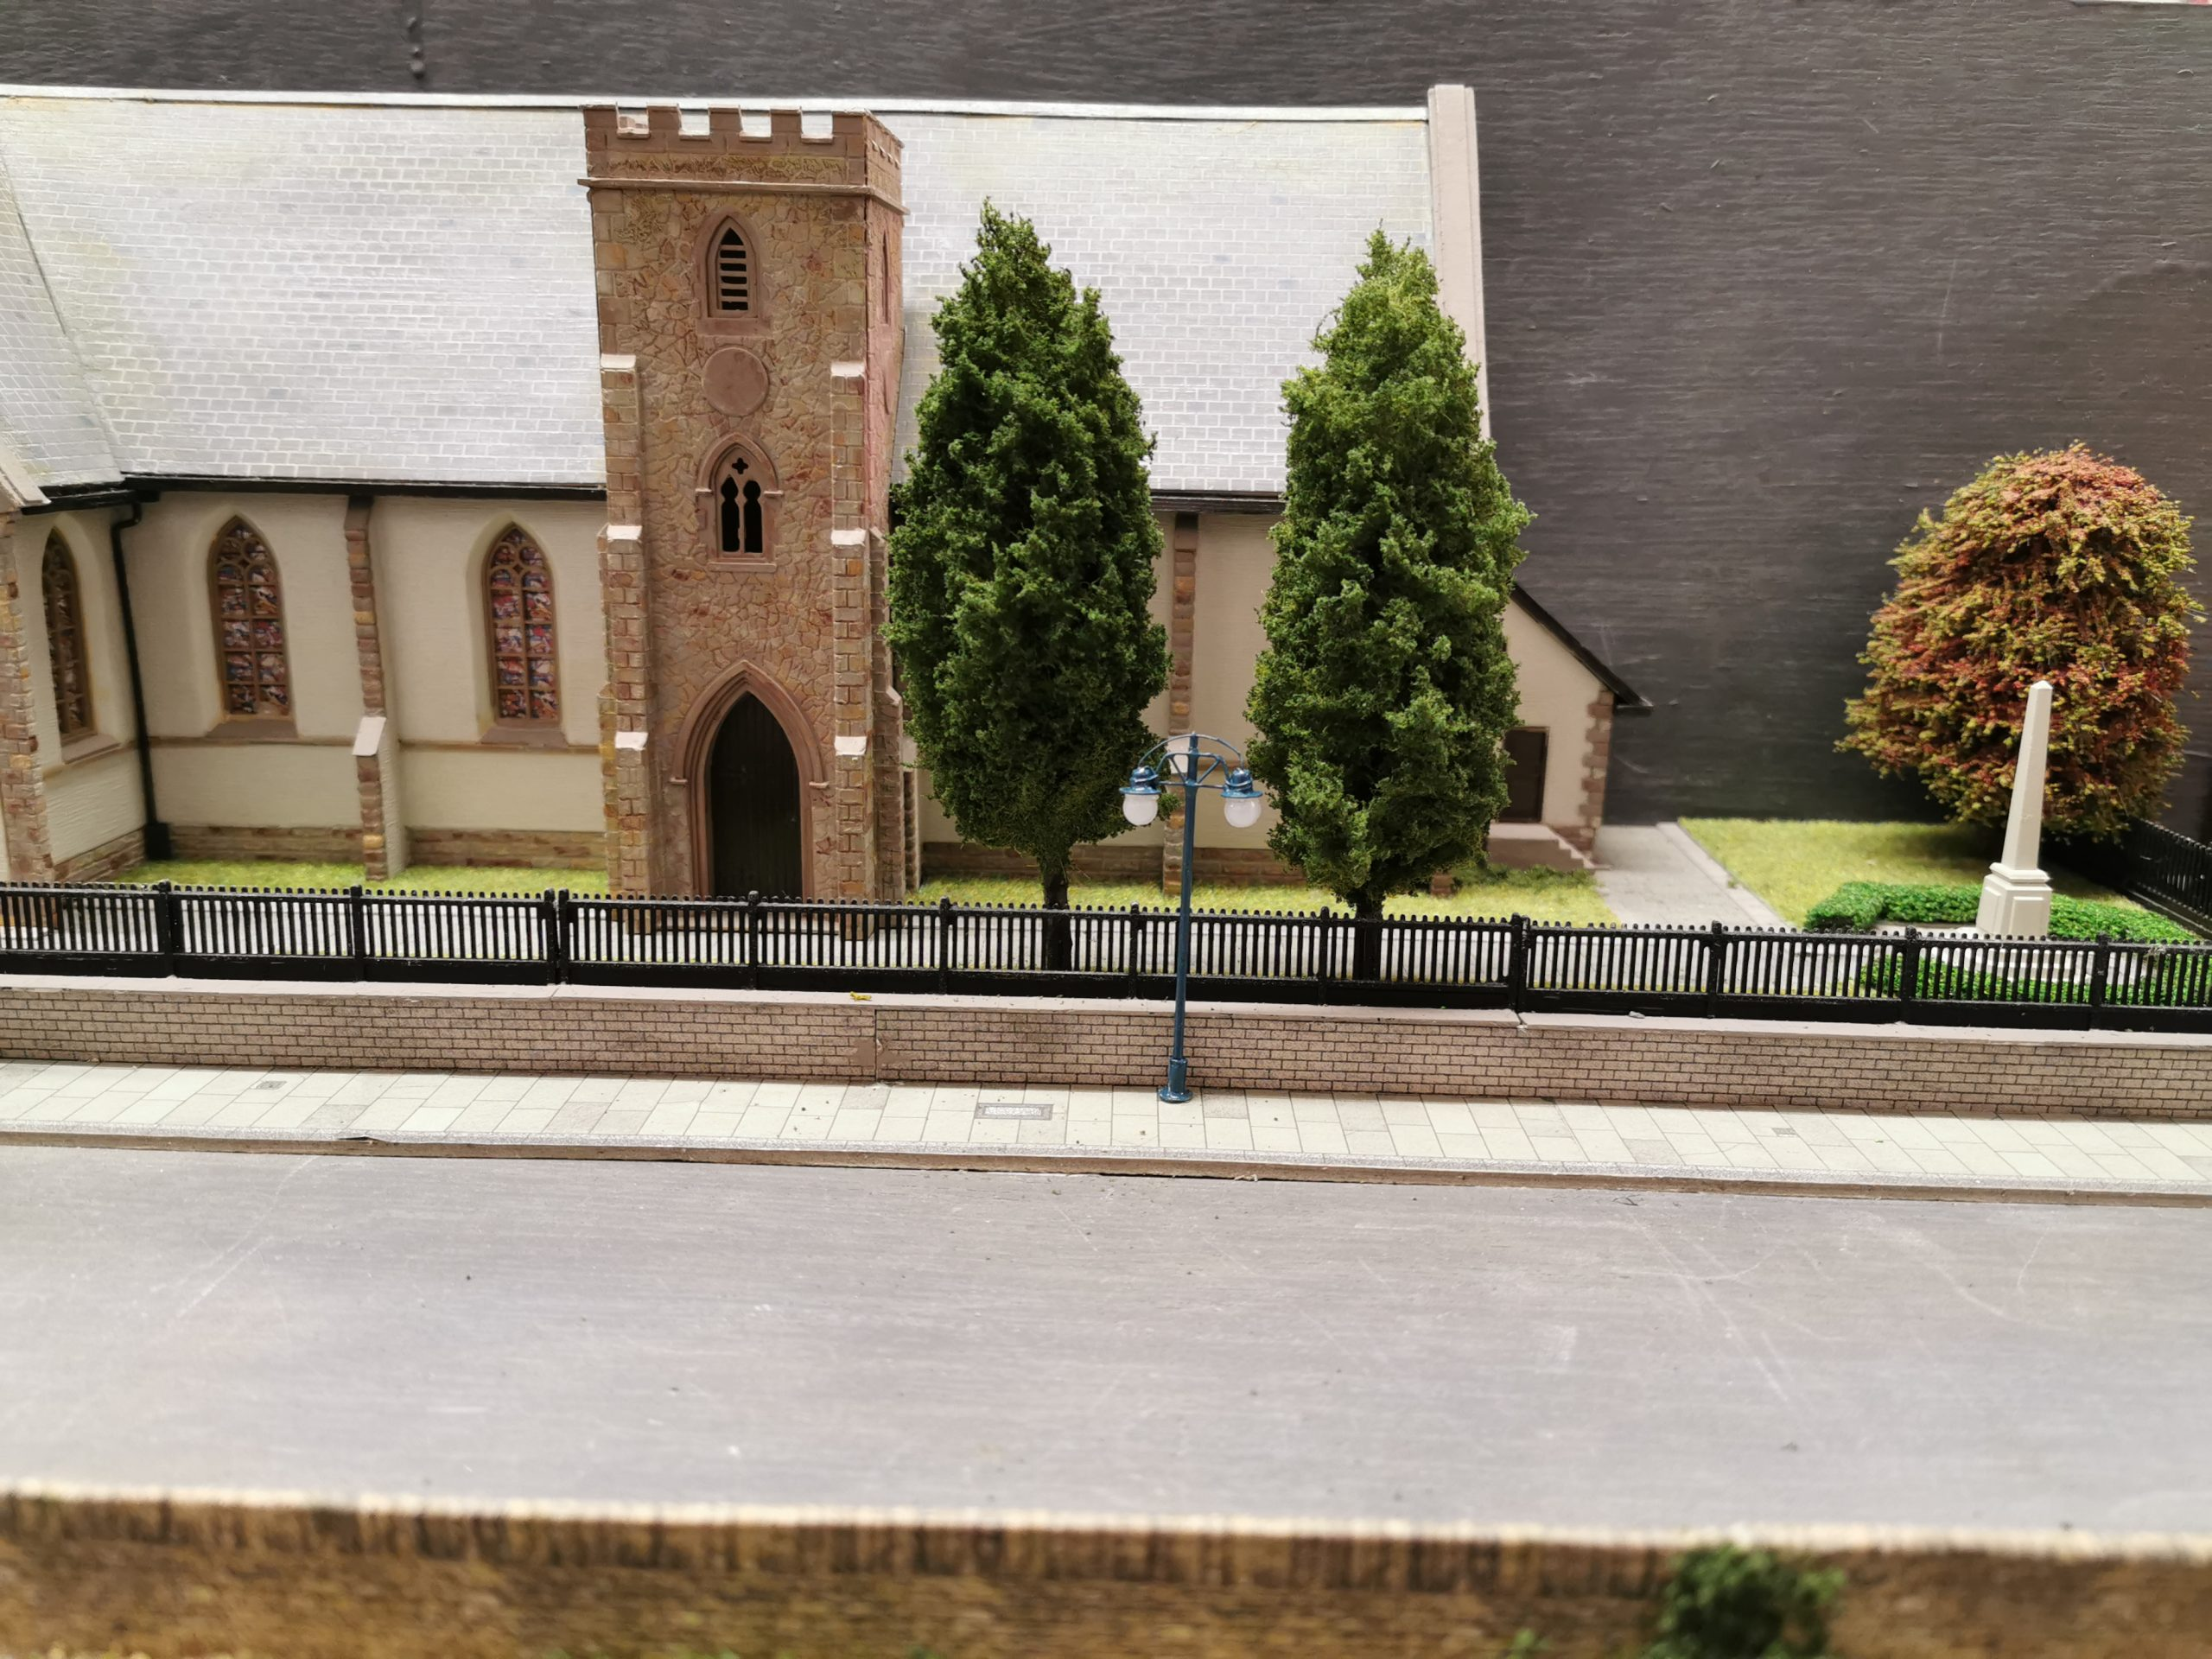 Primo Models trees on the layout of Glenrothes Model Railway Club next to church